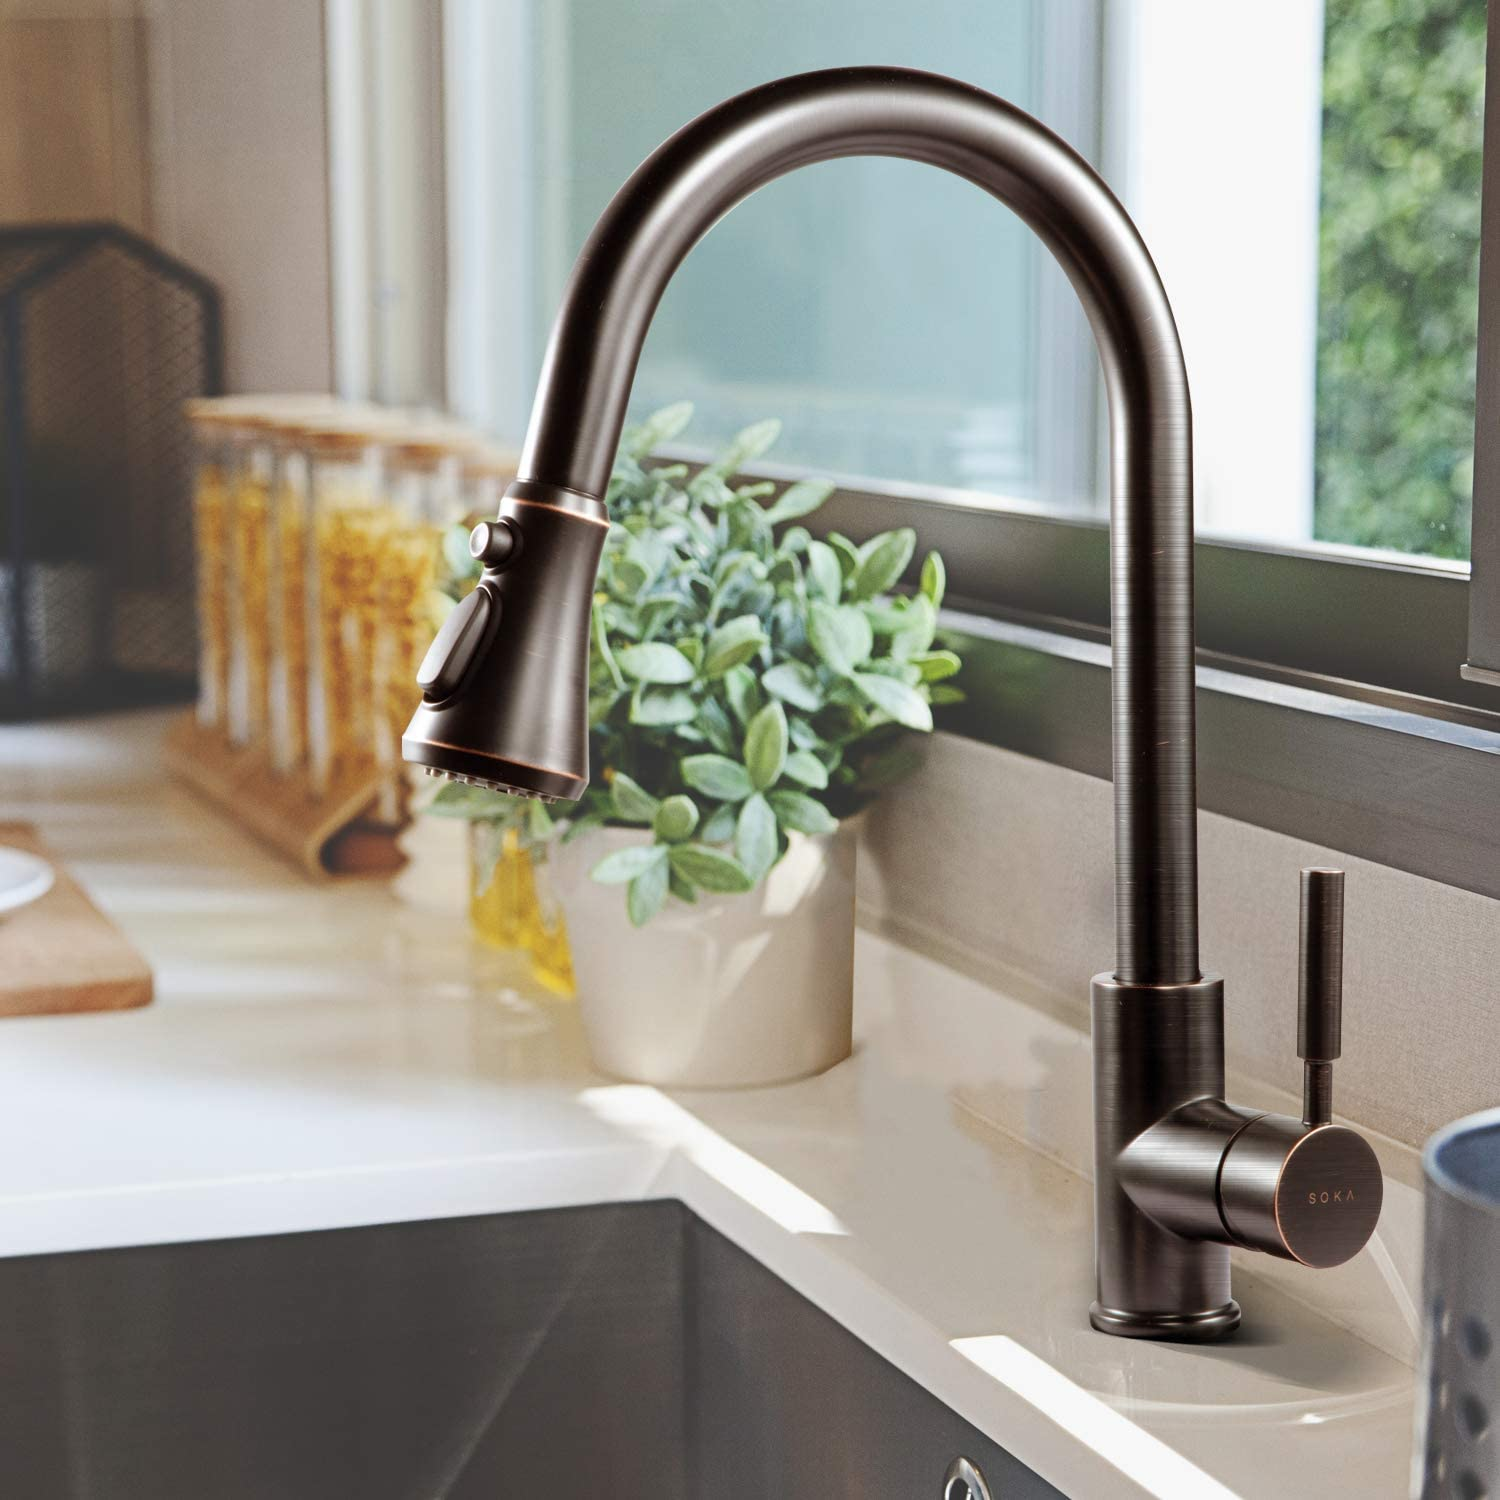 Soka Kitchen Faucet Oil Rubbed Bronze Kitchen Sink Faucet With Pull Down Sprayer Kitchen Faucet Bronze With Deck Plate Single Handle Modern Rv Kitchen Faucet Orb 3 Function Laundry Faucet Amazon Com